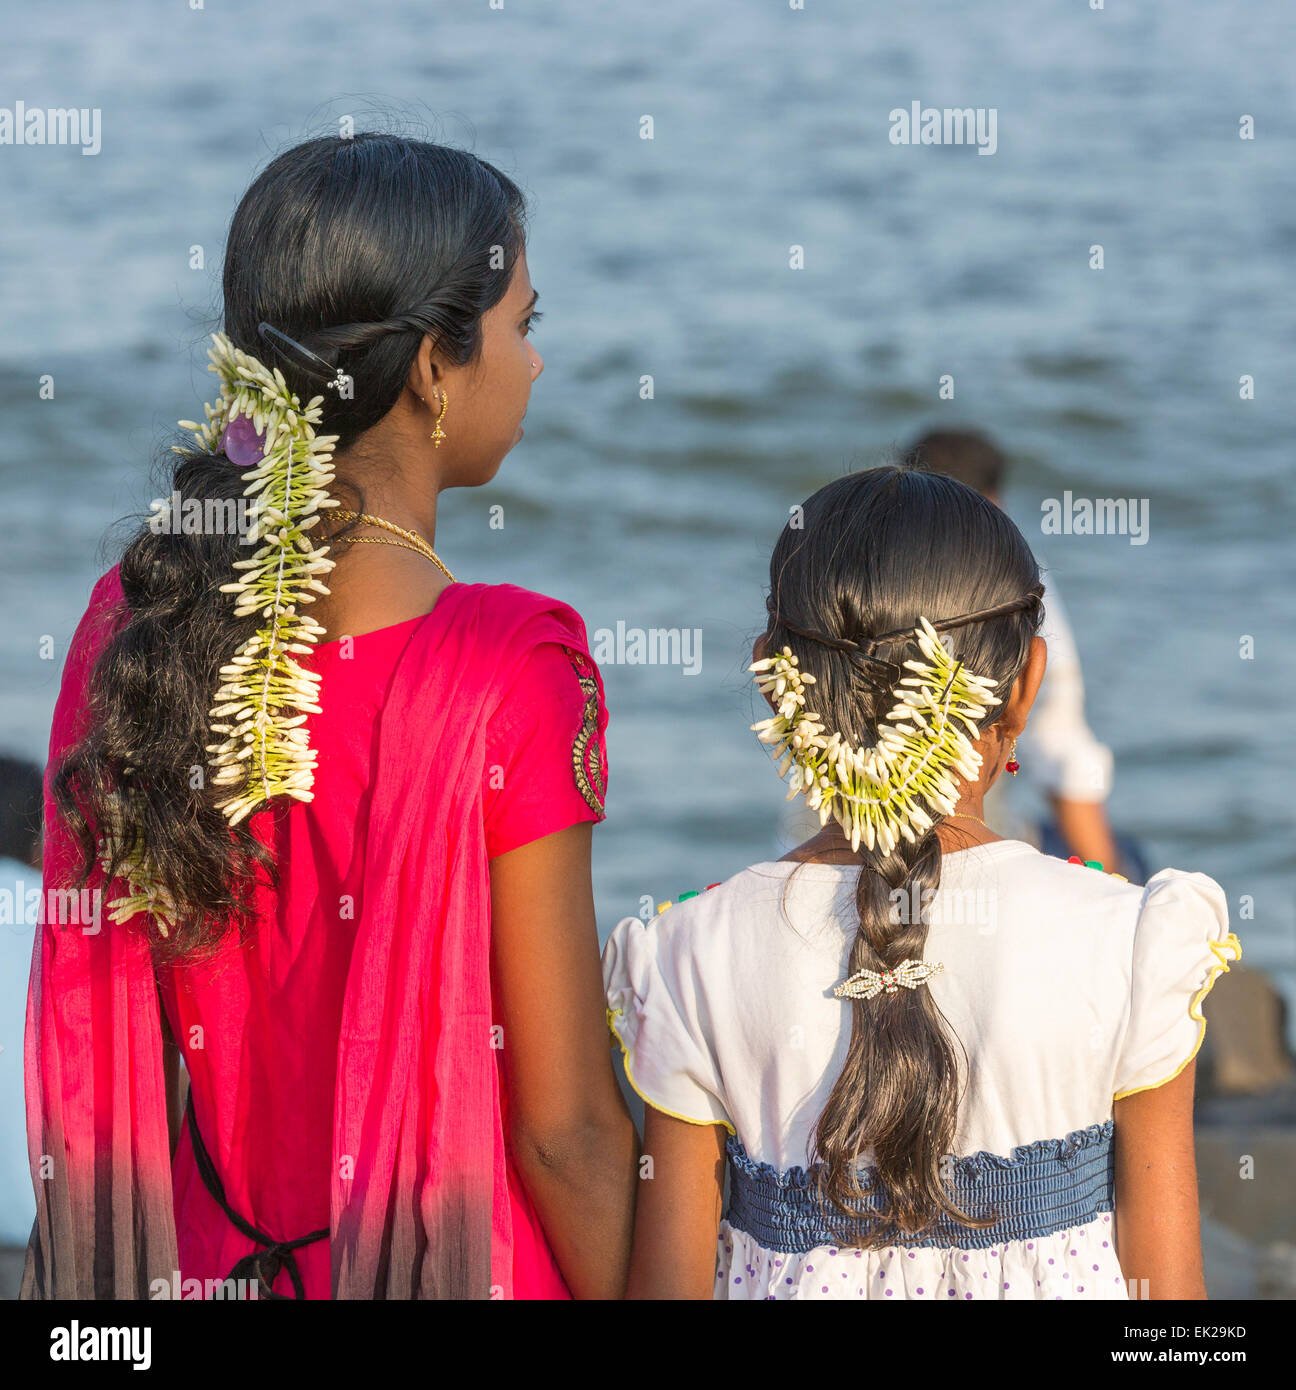 Pondicherry girls photos